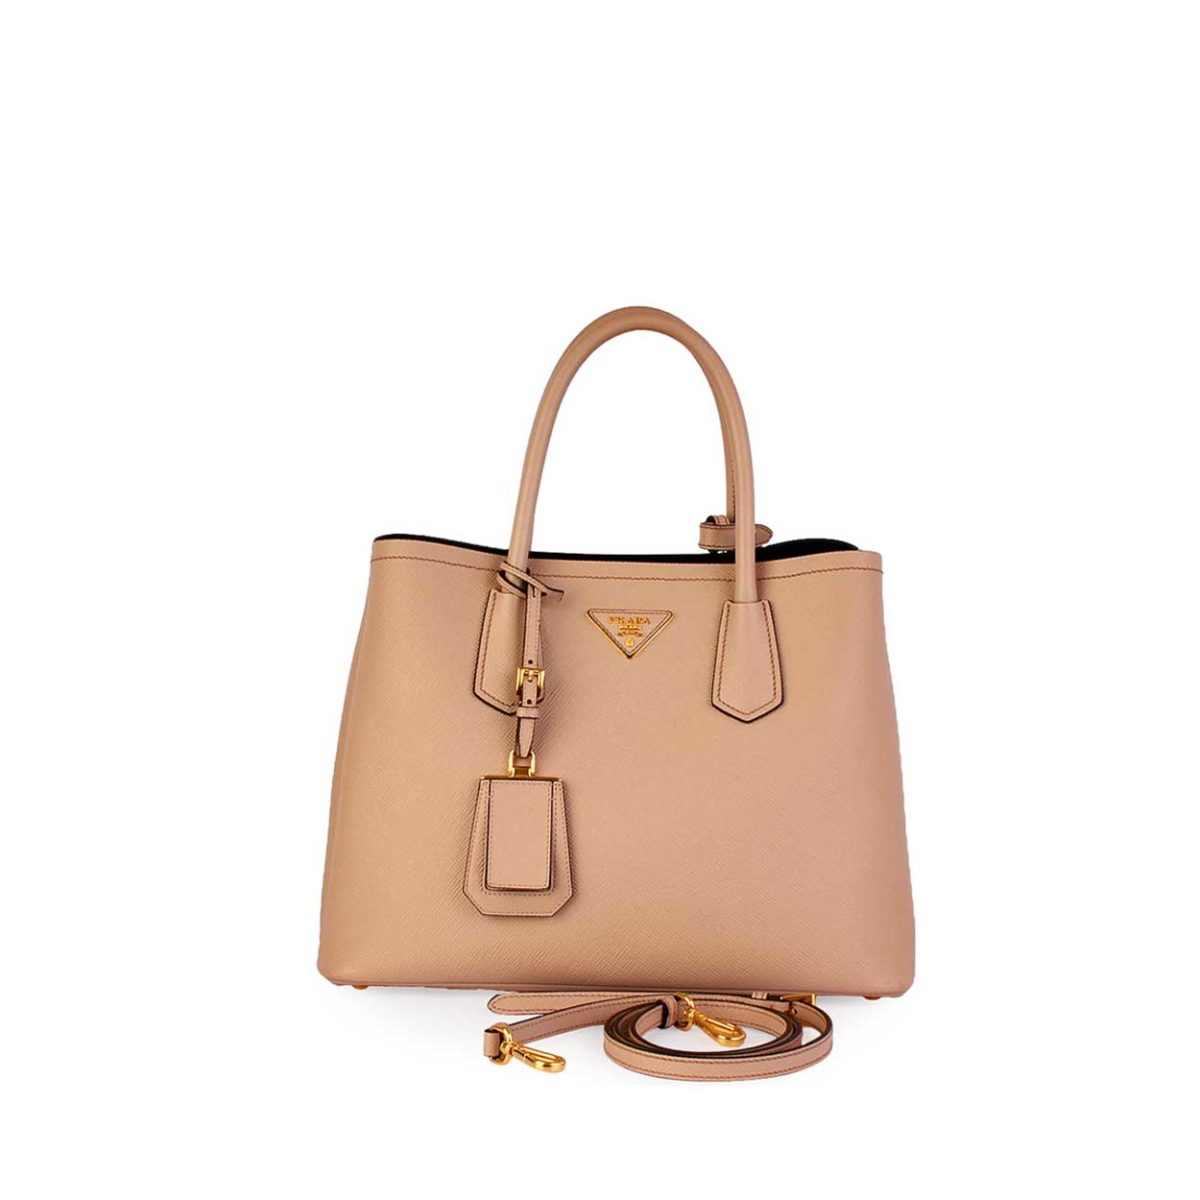 5a99297bb886 PRADA Cammeo Saffiano Leather Double Bag Rose - NEW | Luxity